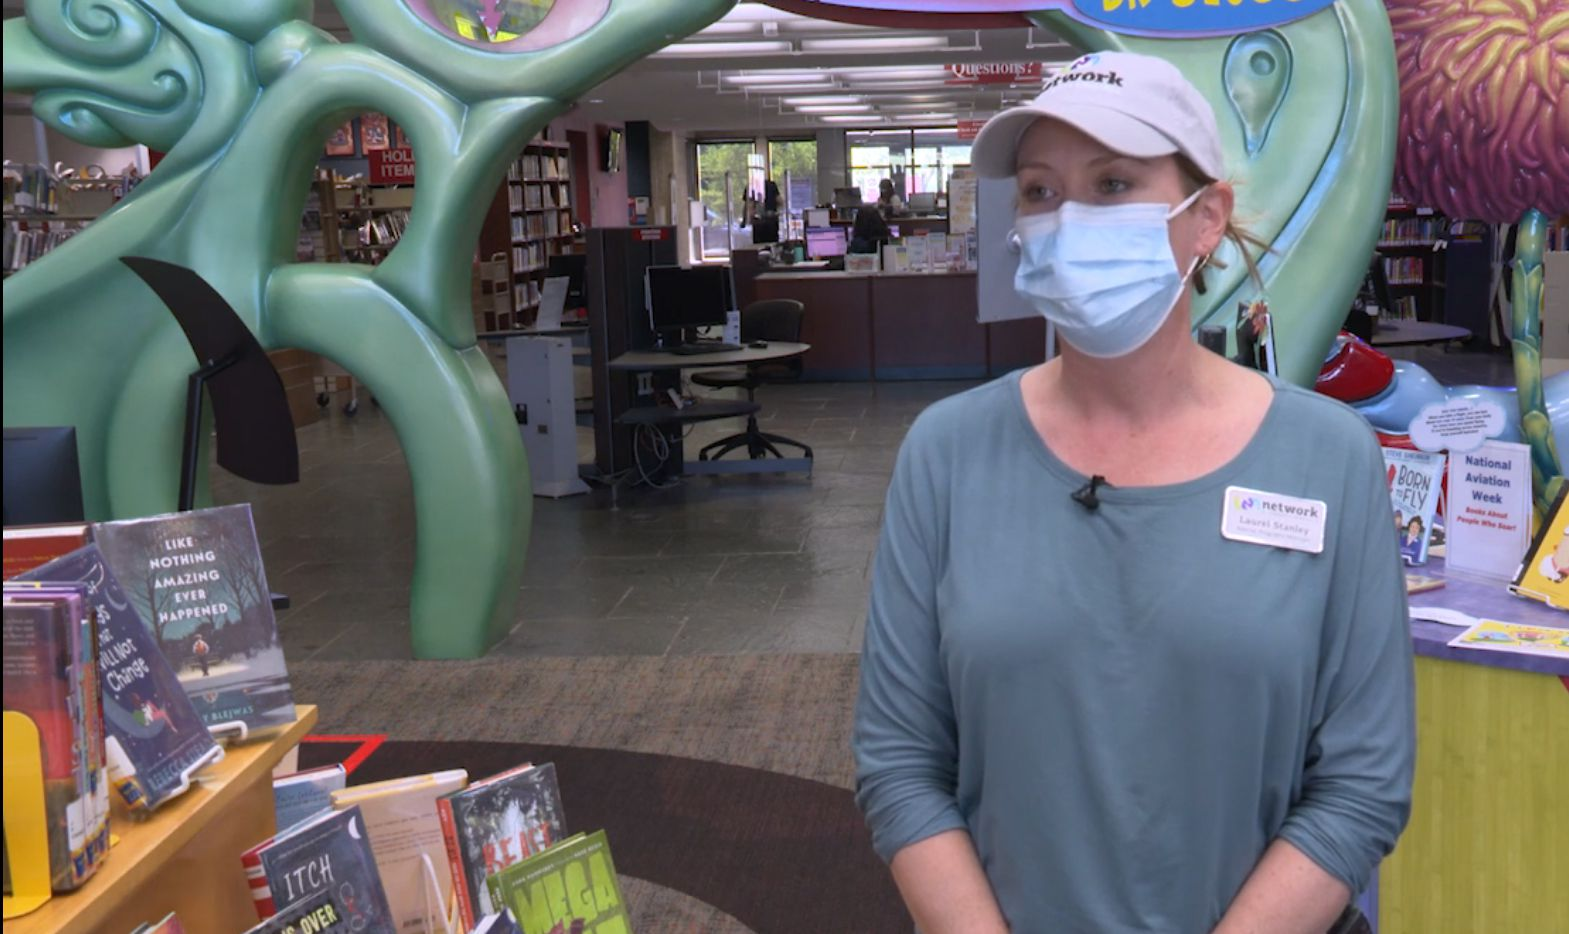 Laurel Stanley, special programs manager for the Network of Community Ministries, discusses the donation of 600 books to the non-profit by Friends of the Richardson Public Library.